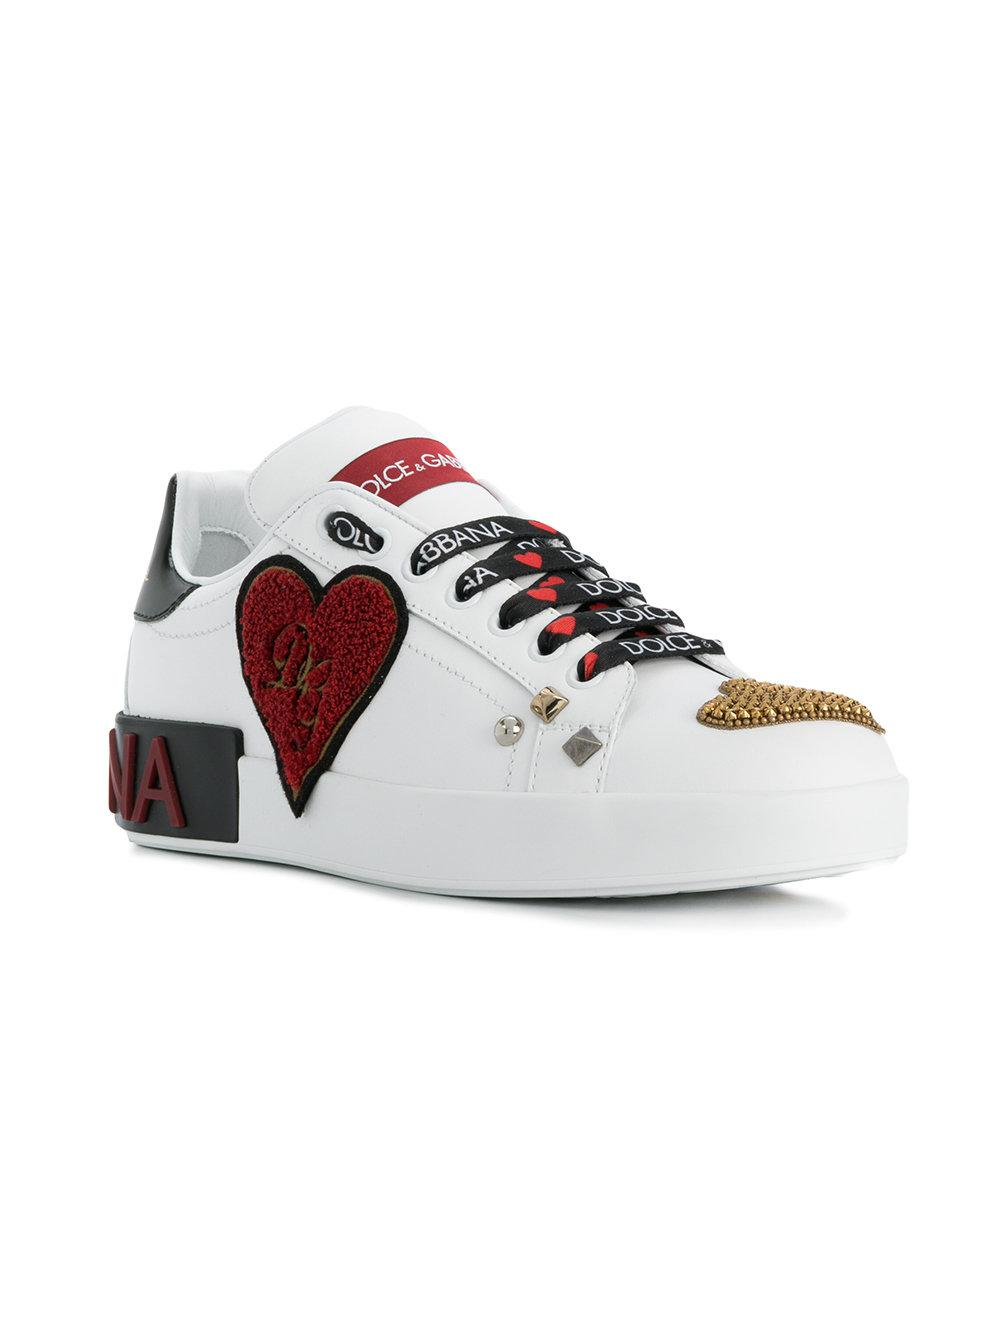 Dolce & Gabbana Leather Heart Embellished Sneakers in White